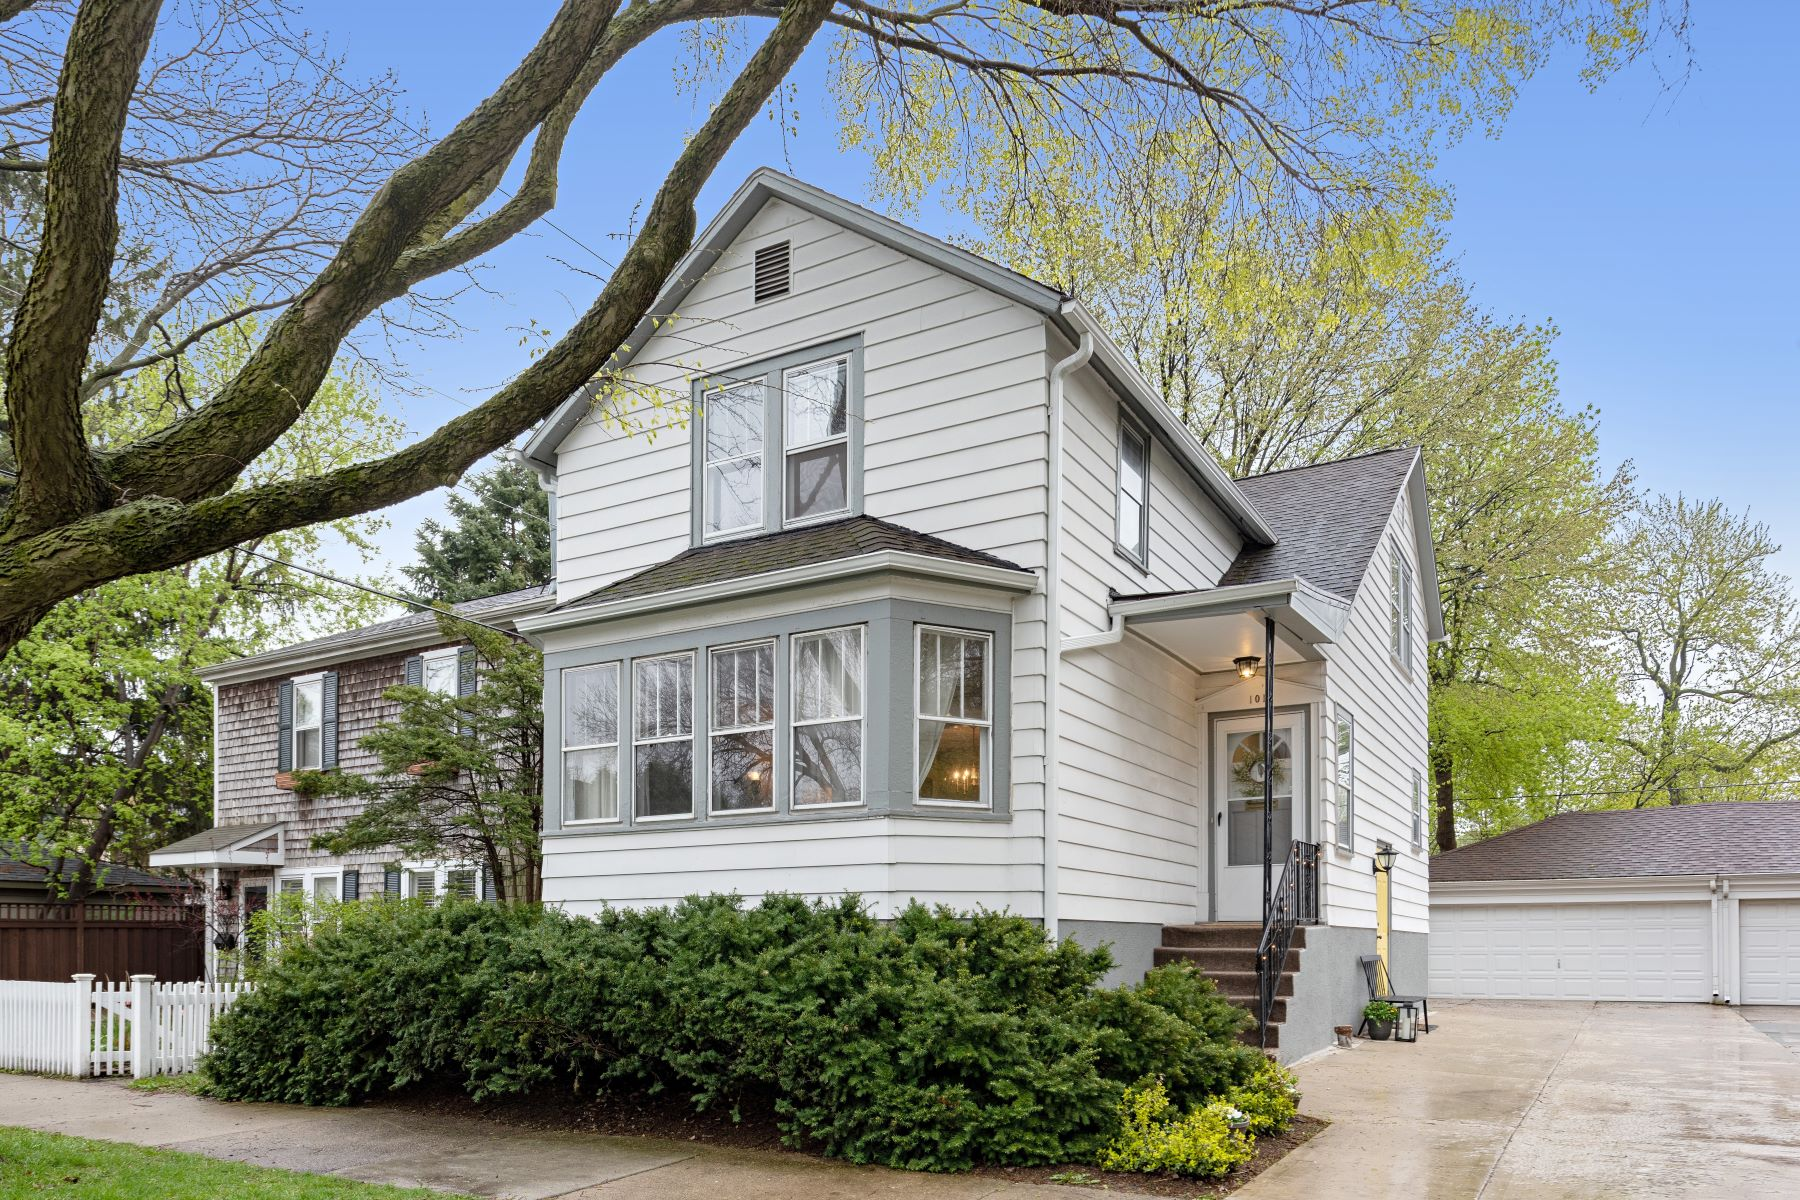 Single Family Homes for Active at Beautiful Oak Park Home 1017 Division Street Oak Park, Illinois 60302 United States